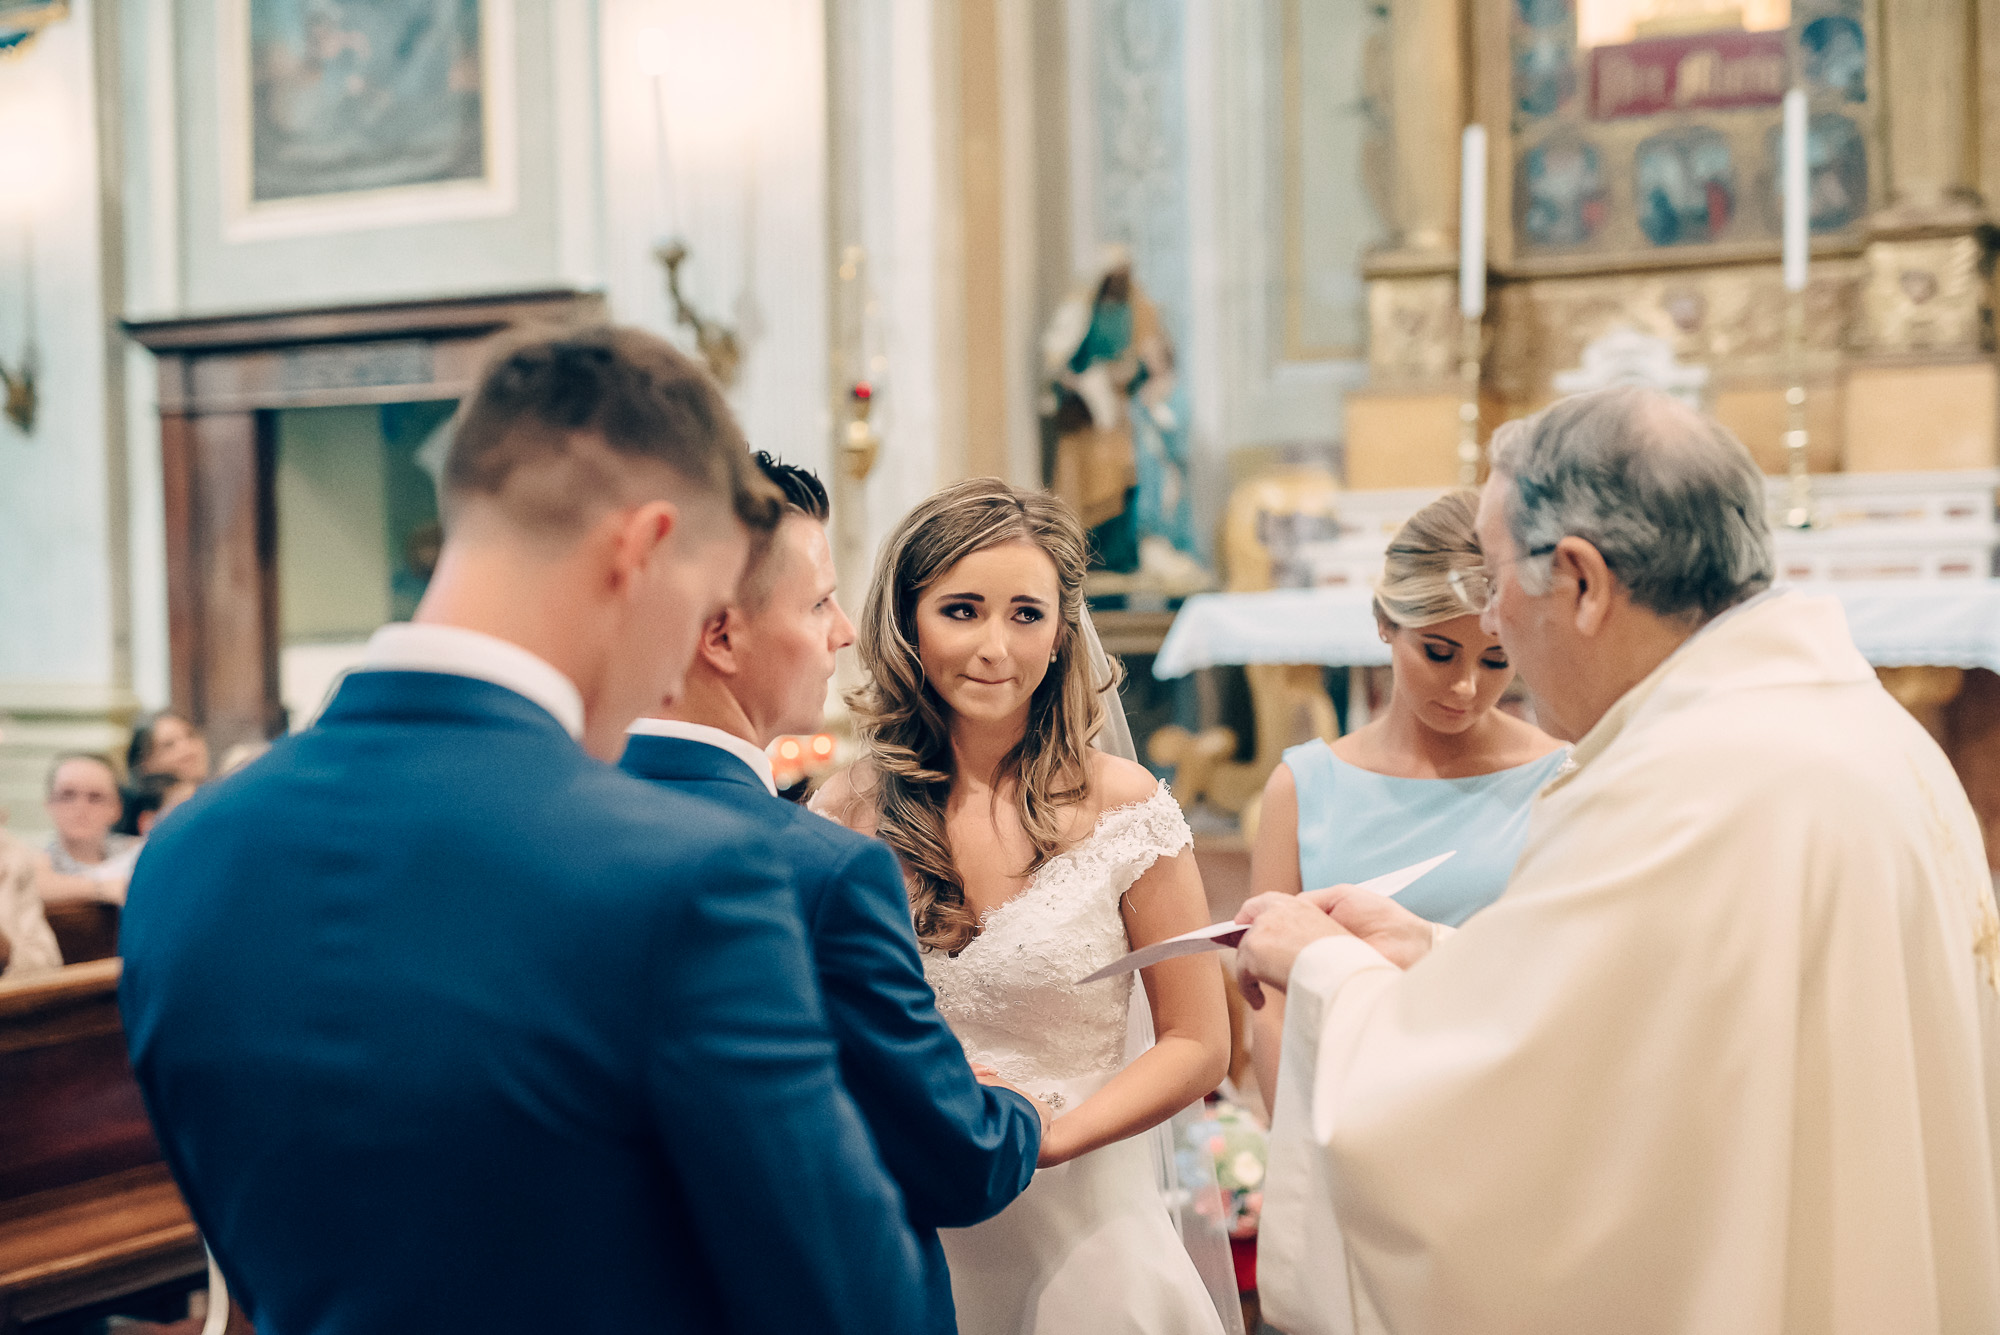 Catholic church wedding lake garda italy